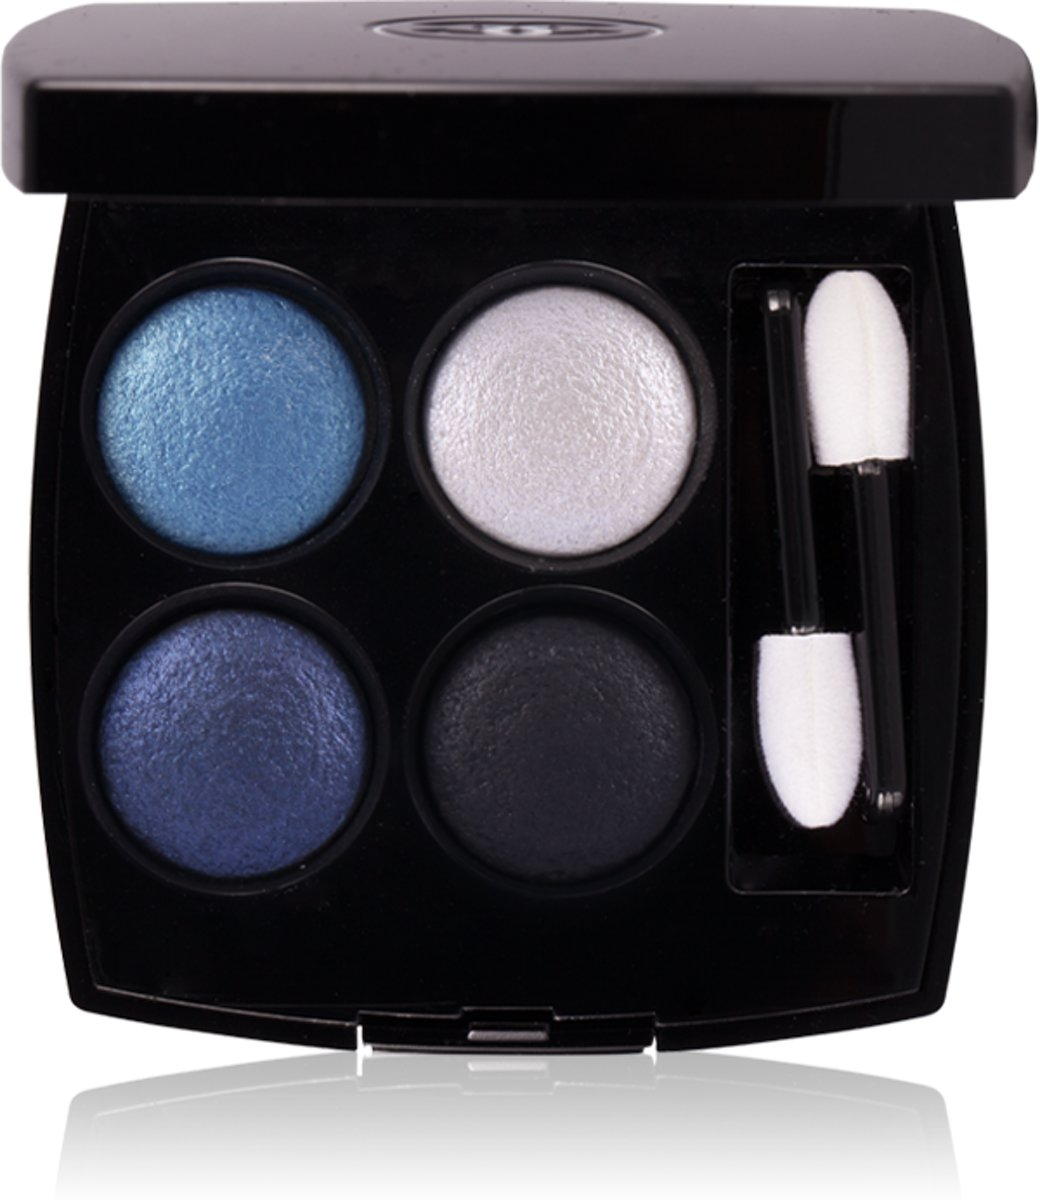 Chanel Les 4 Ombres Multi-Effect Quadra Eyeshadow - 244 Tissé Jazz - 2 g - oogschaduw palette